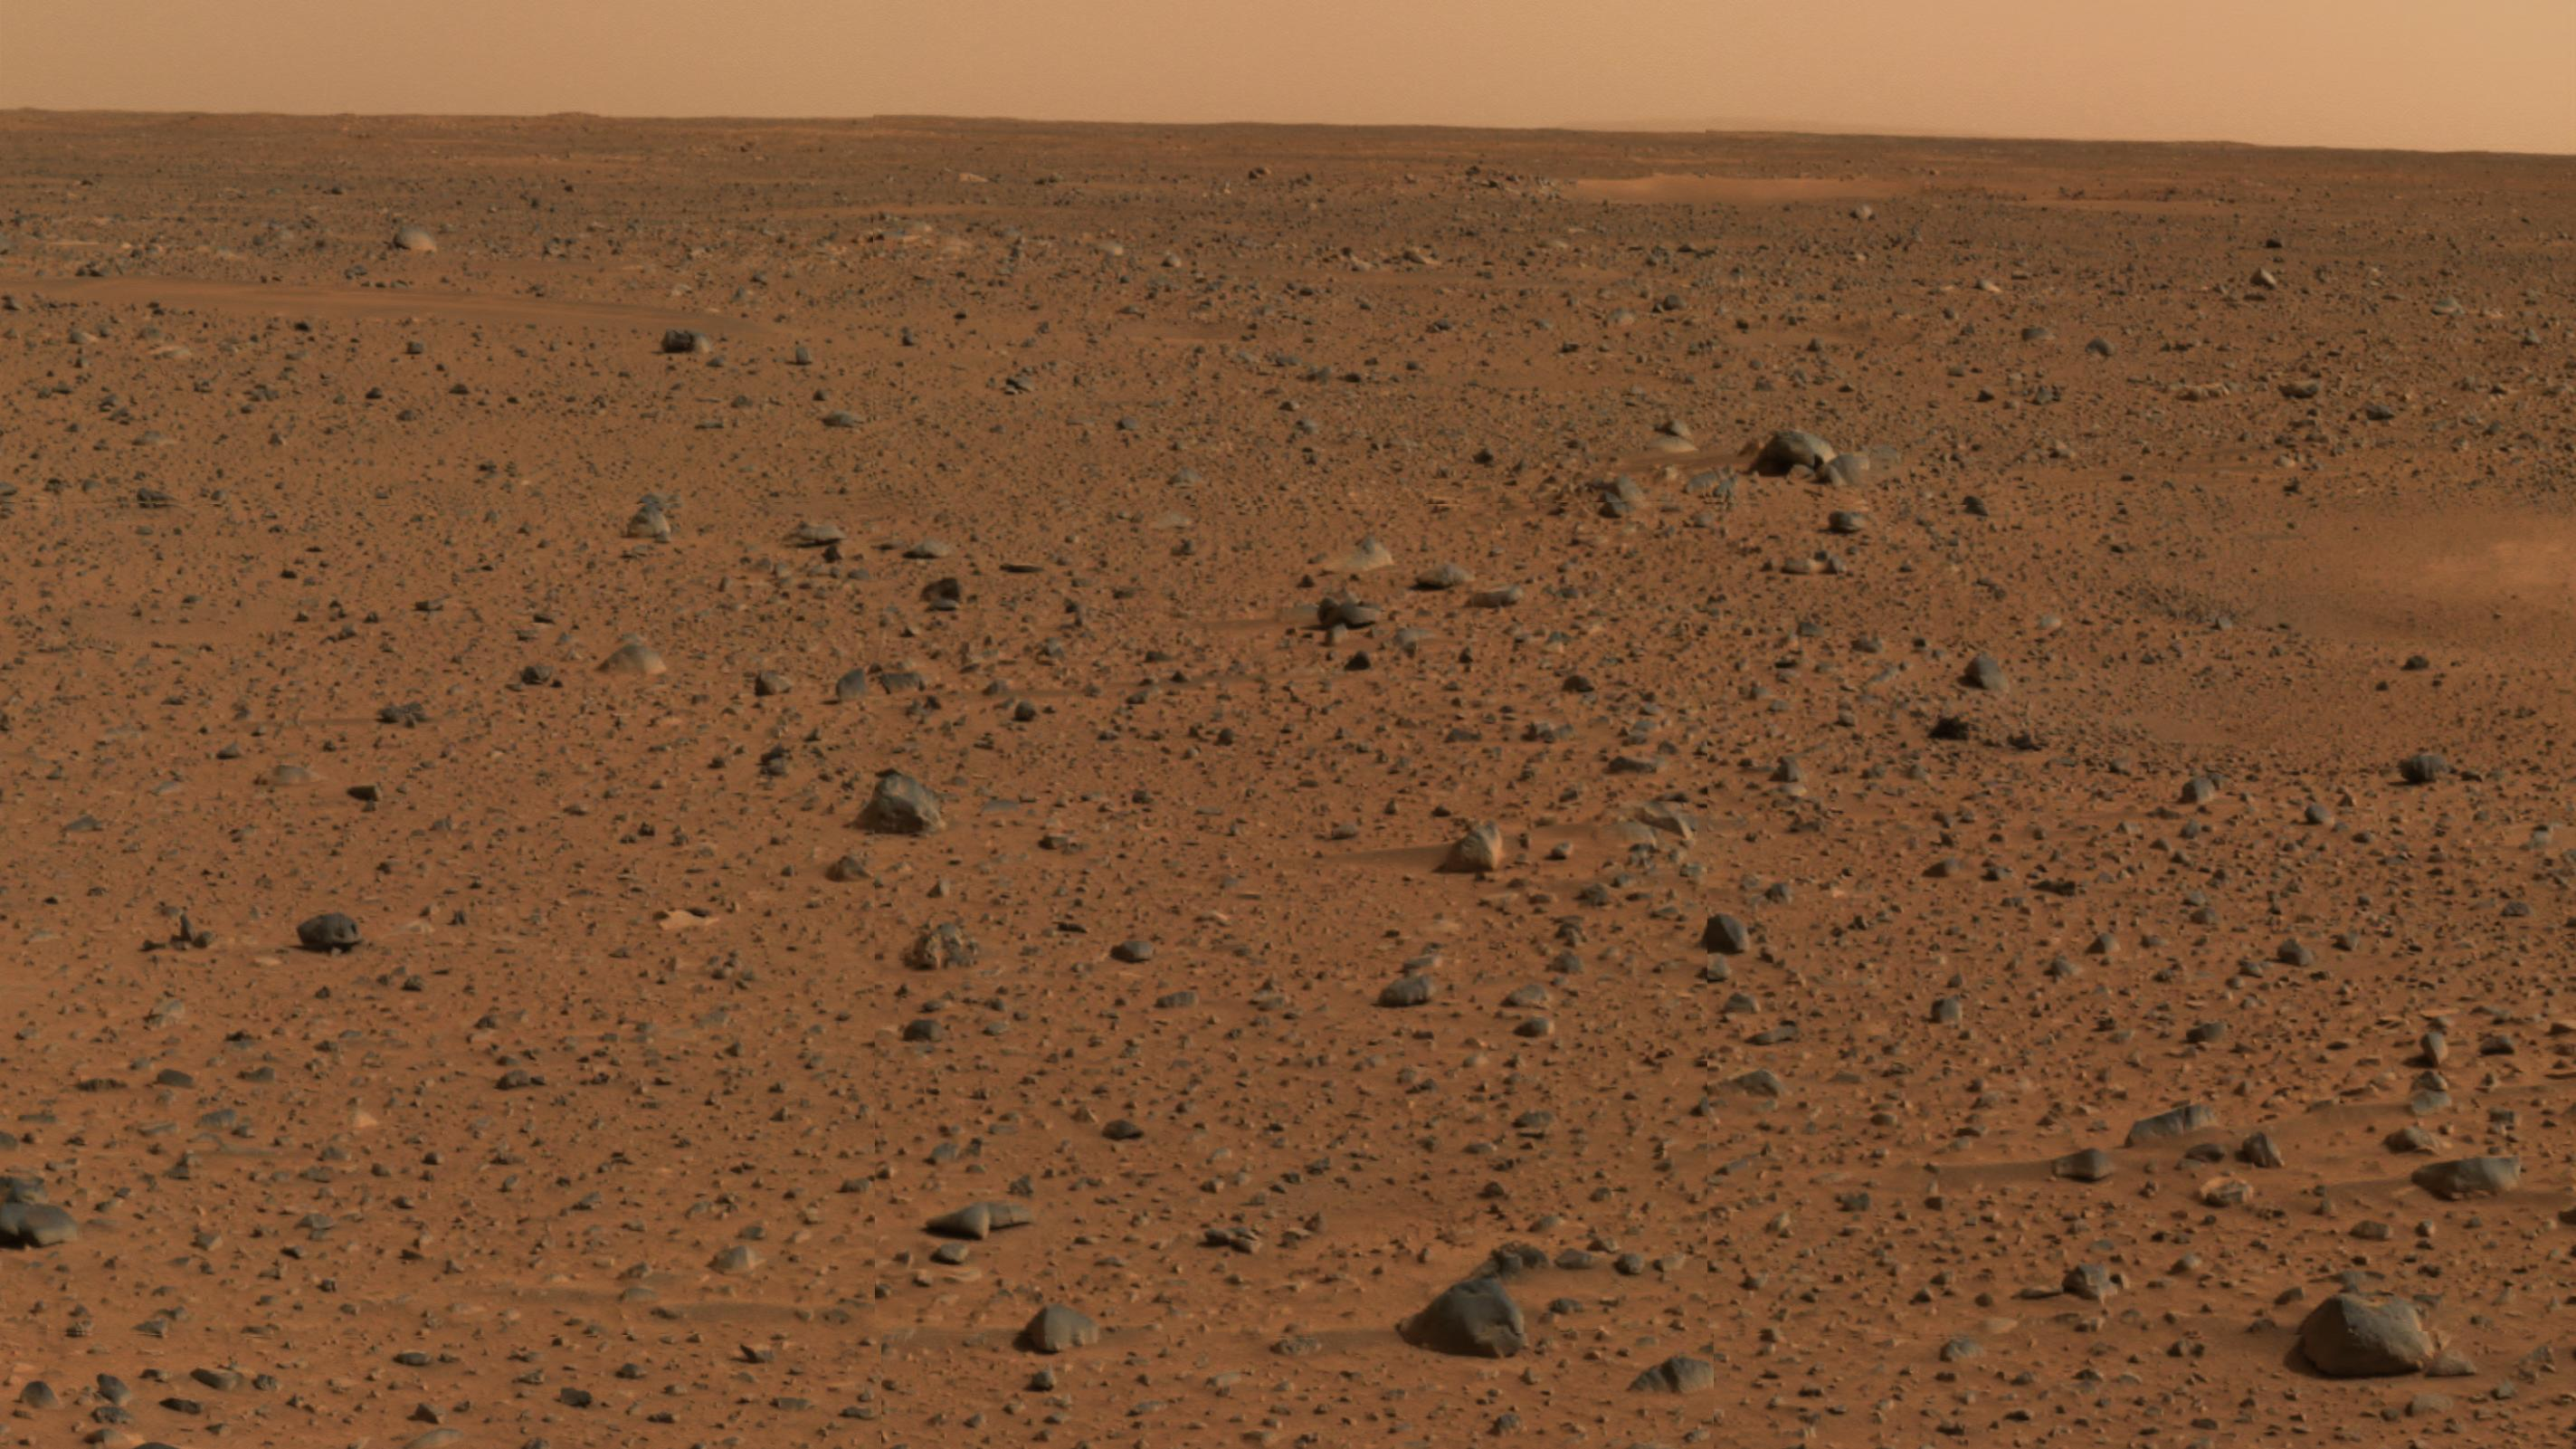 mars rover pictures hd - photo #18